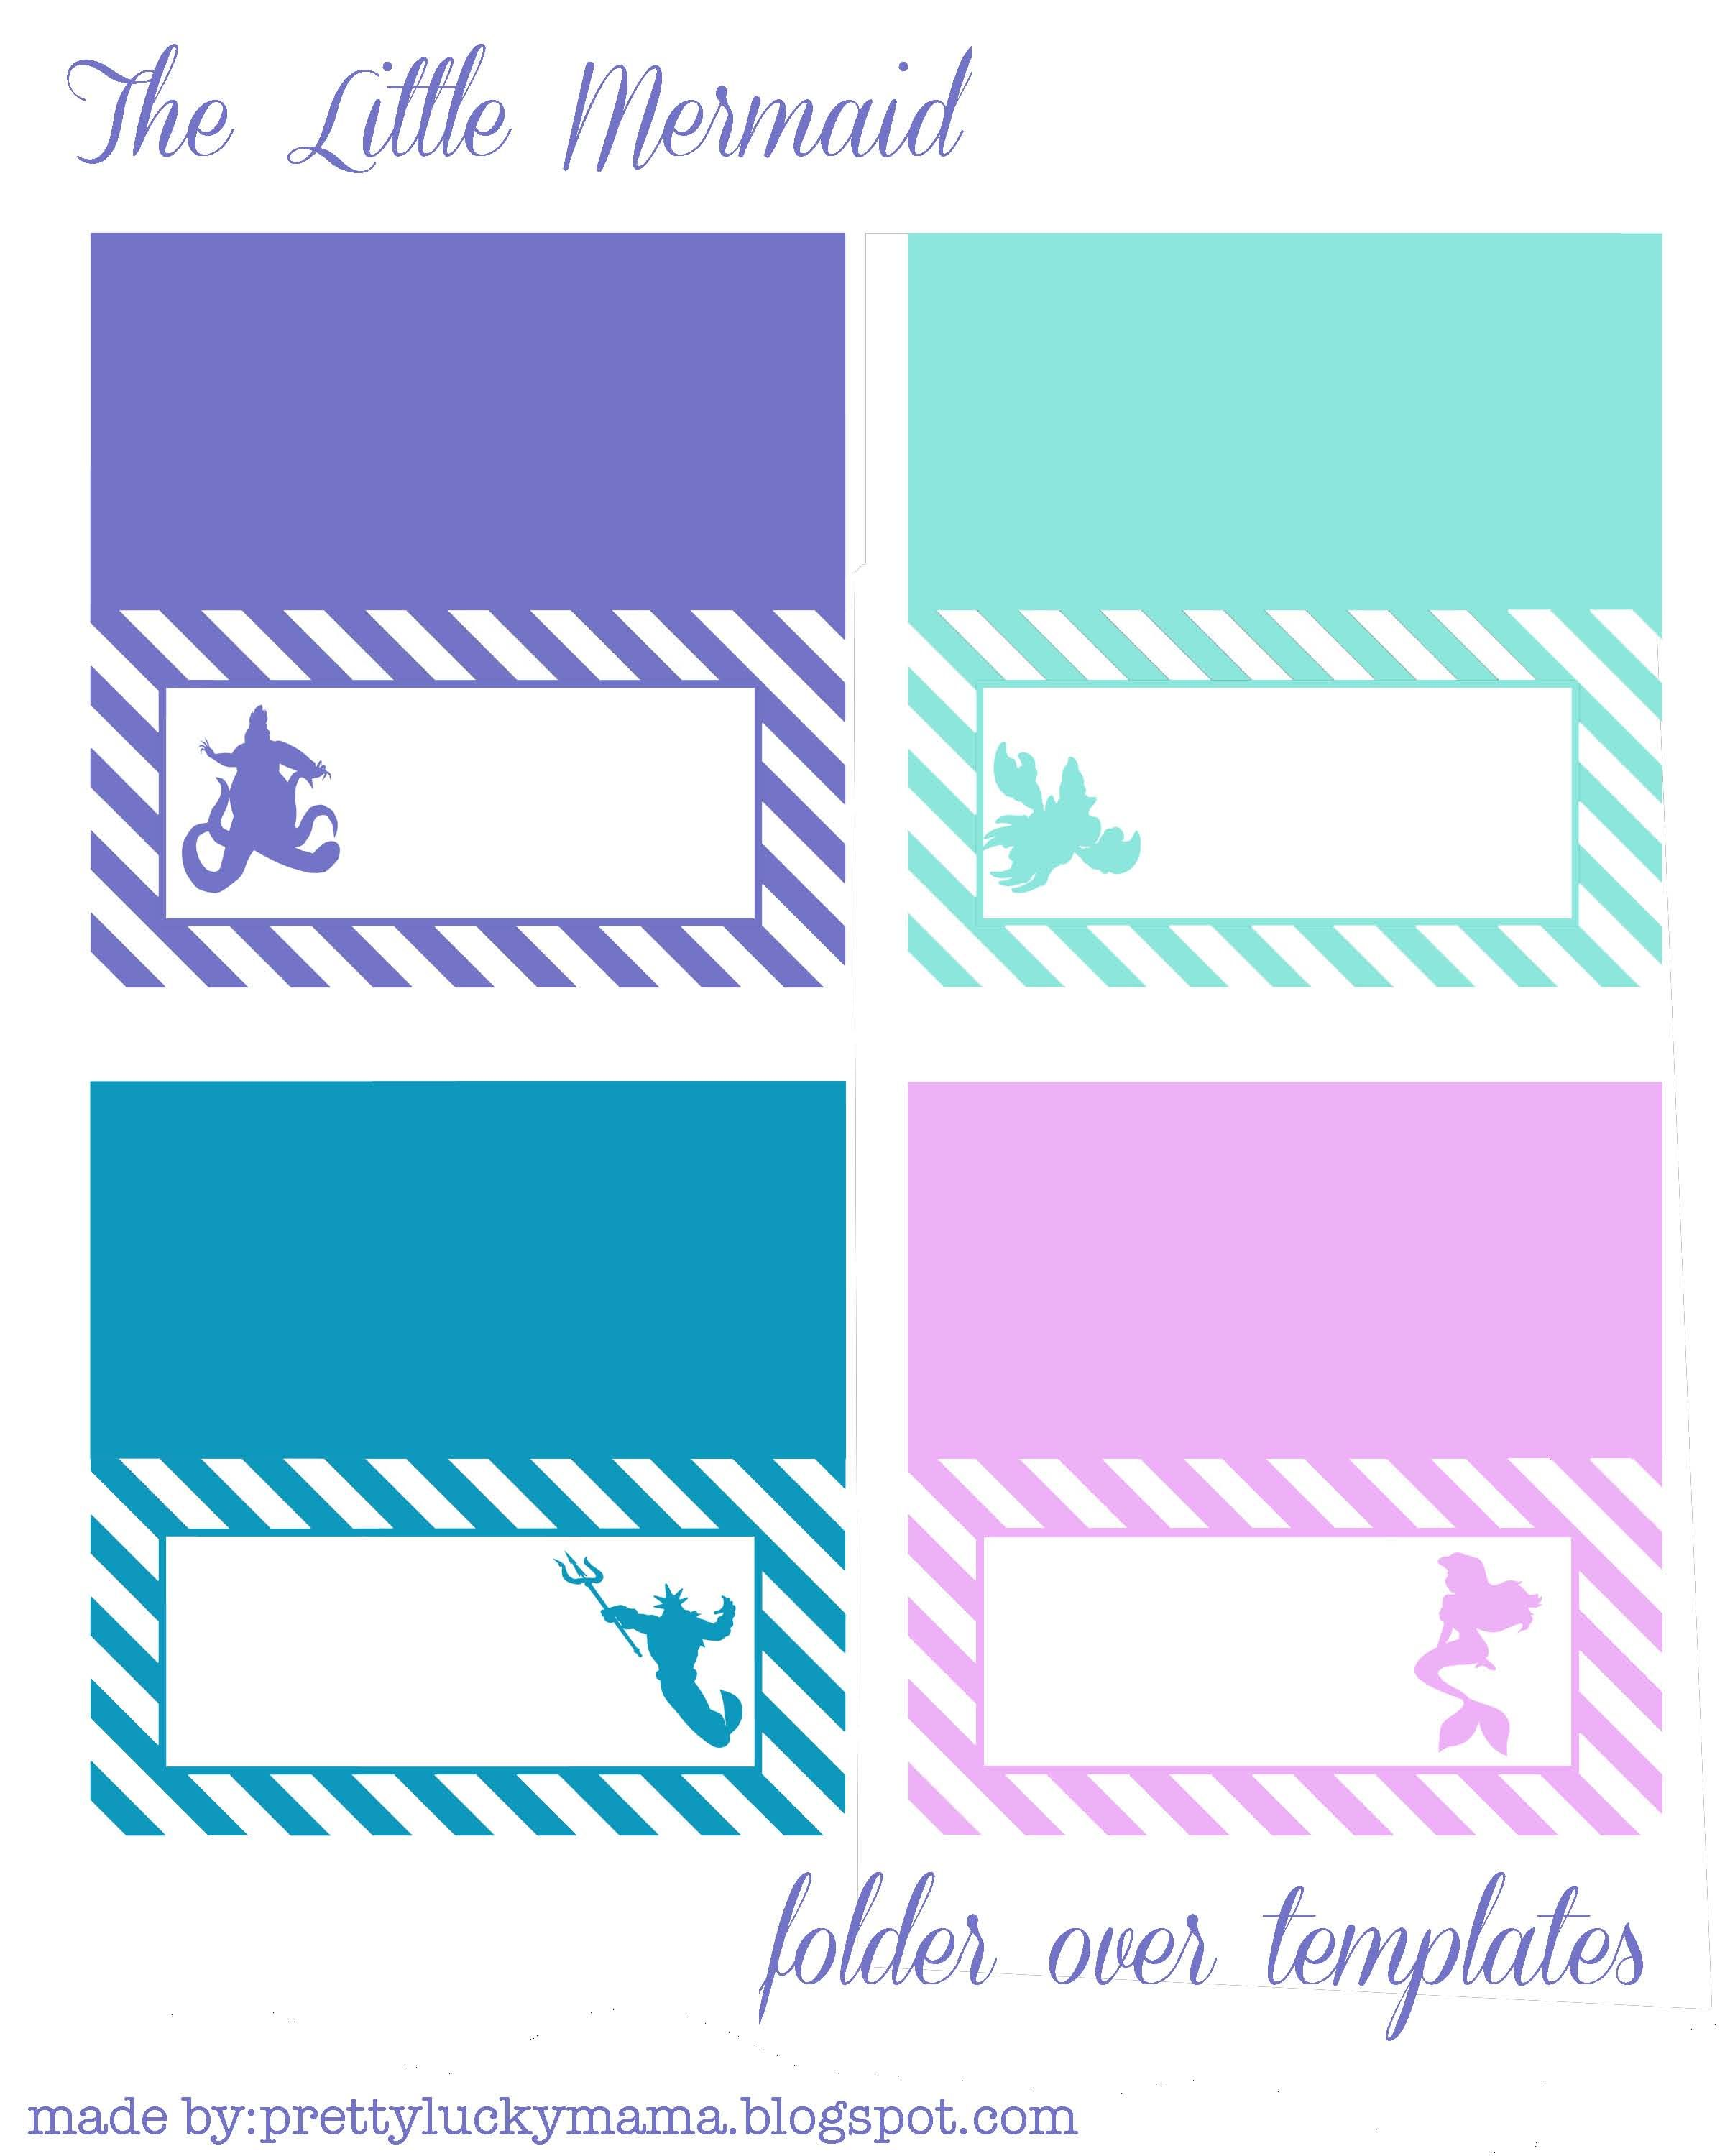 the little mermaid fold over templates free printables also take